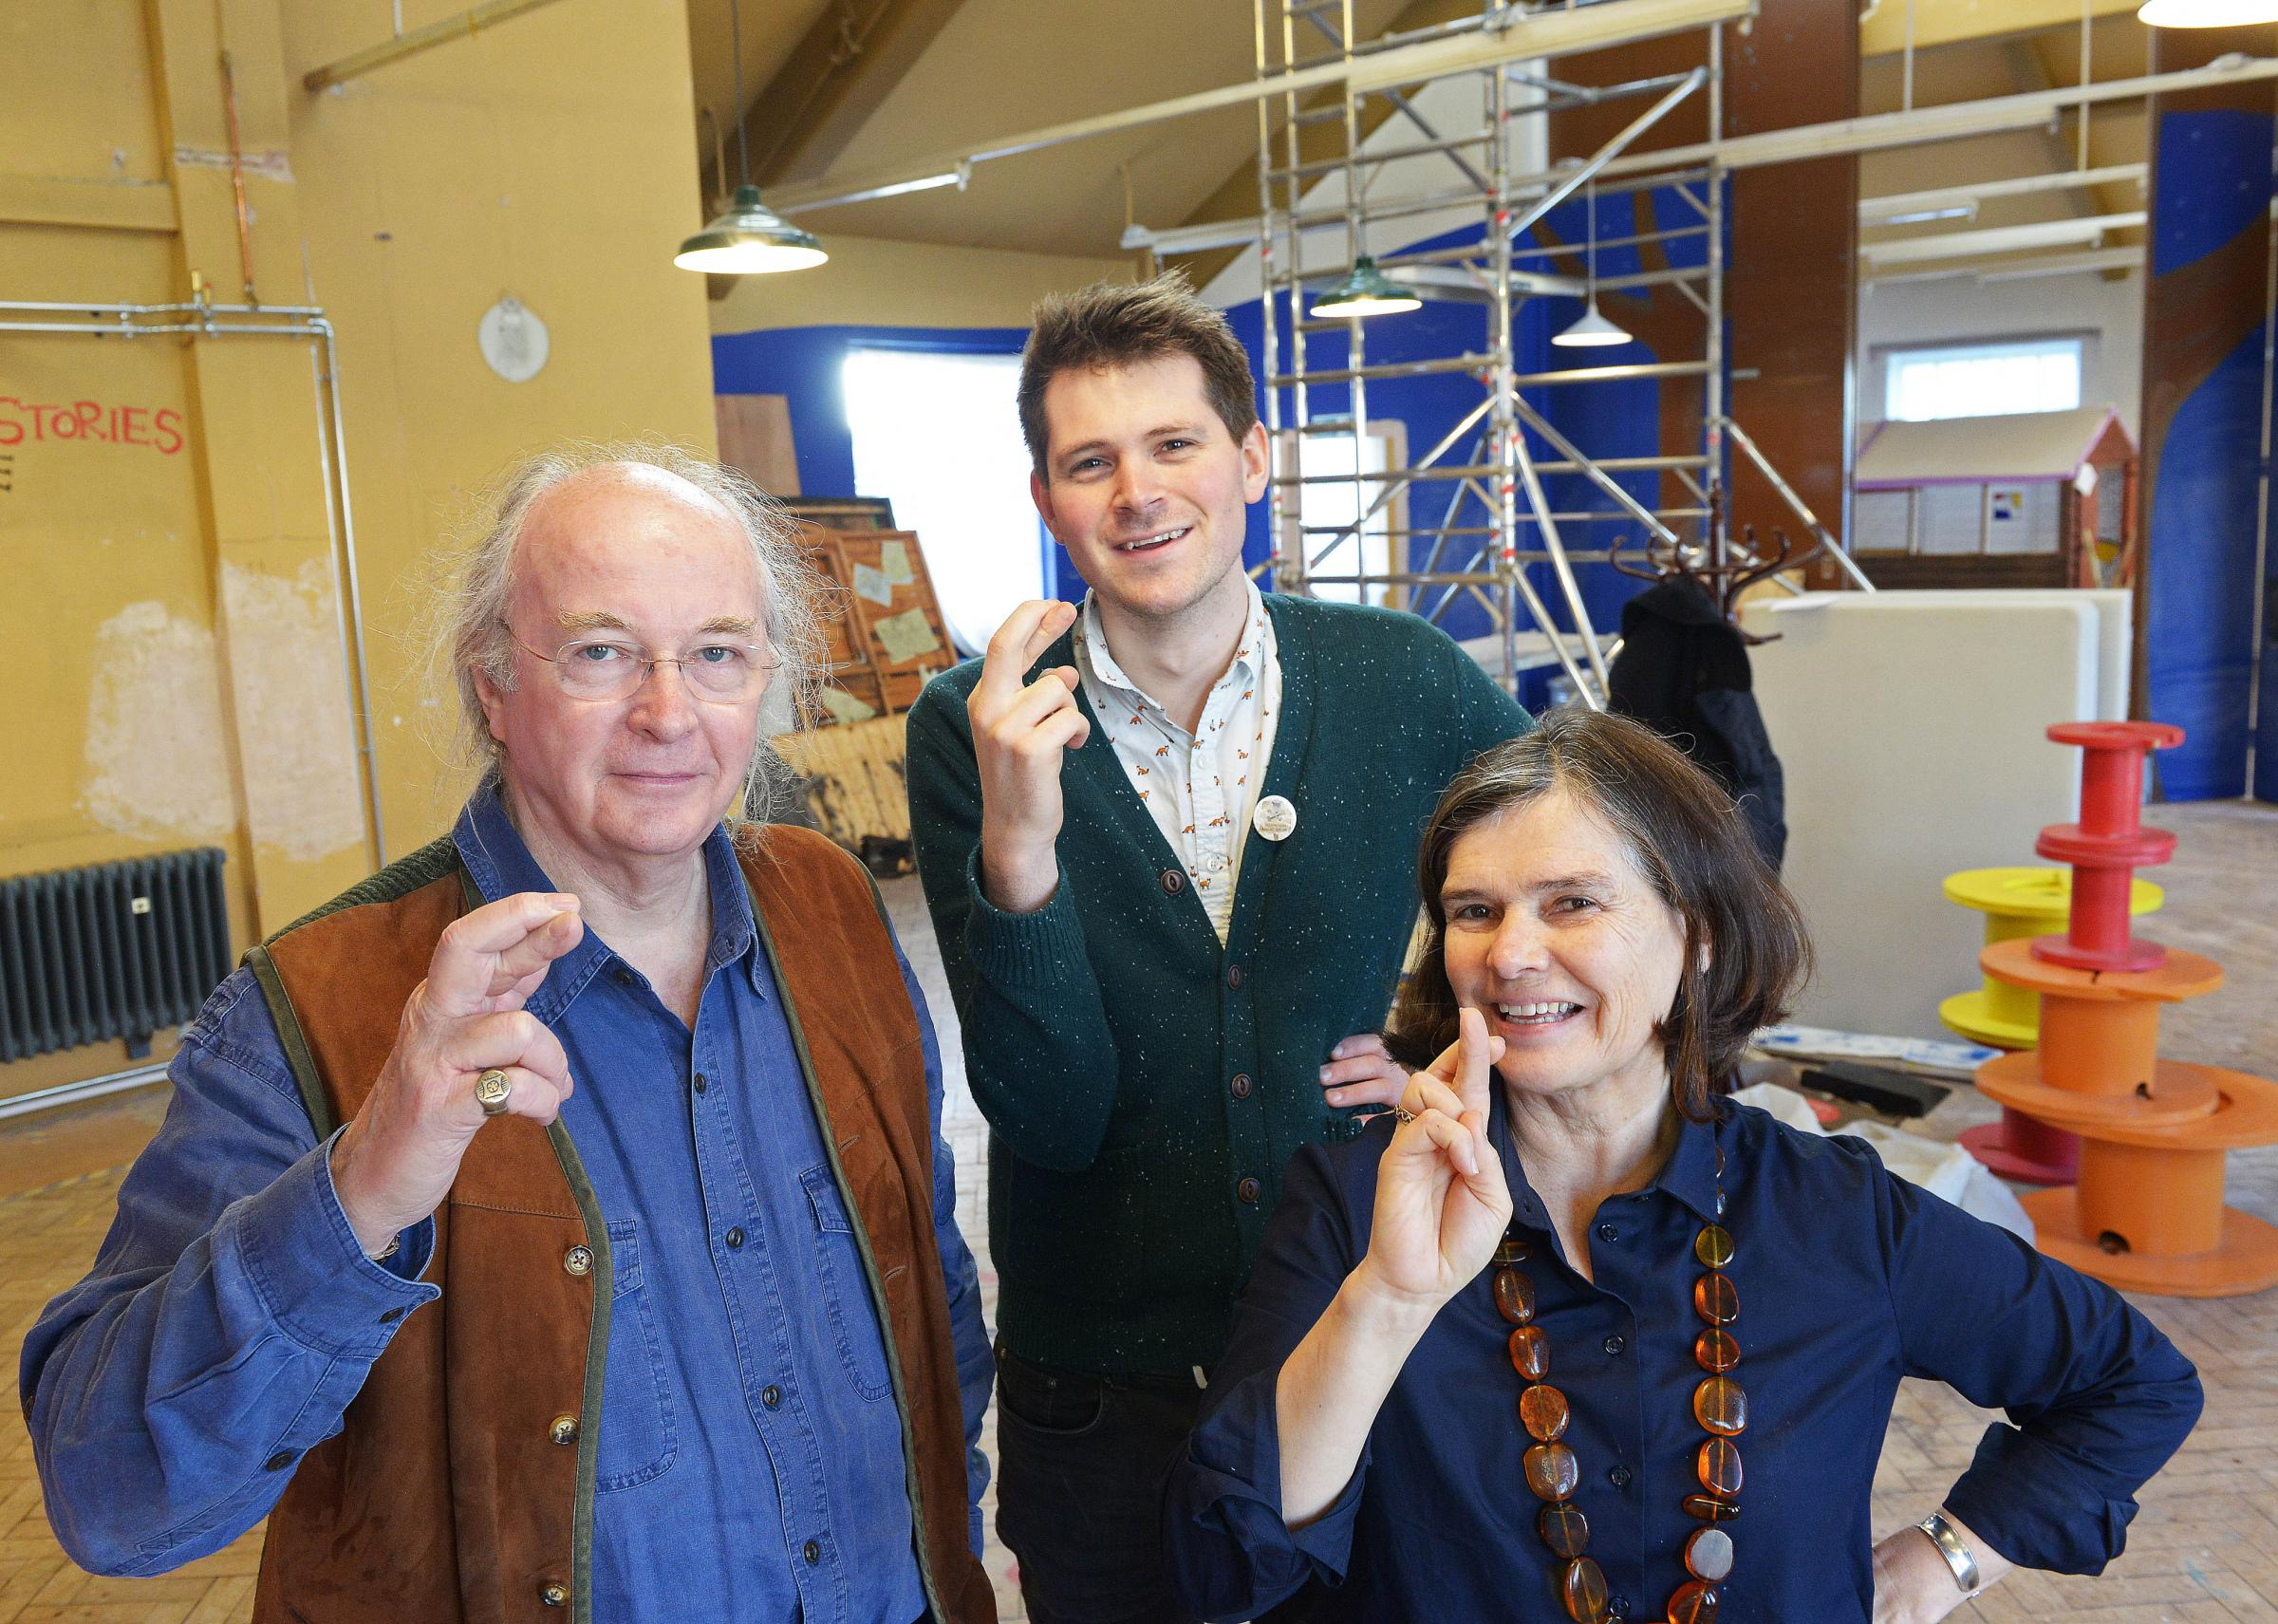 Author Philip Pullman with The Story Museum's marketing officer David Gibb and co-director Tish Francis